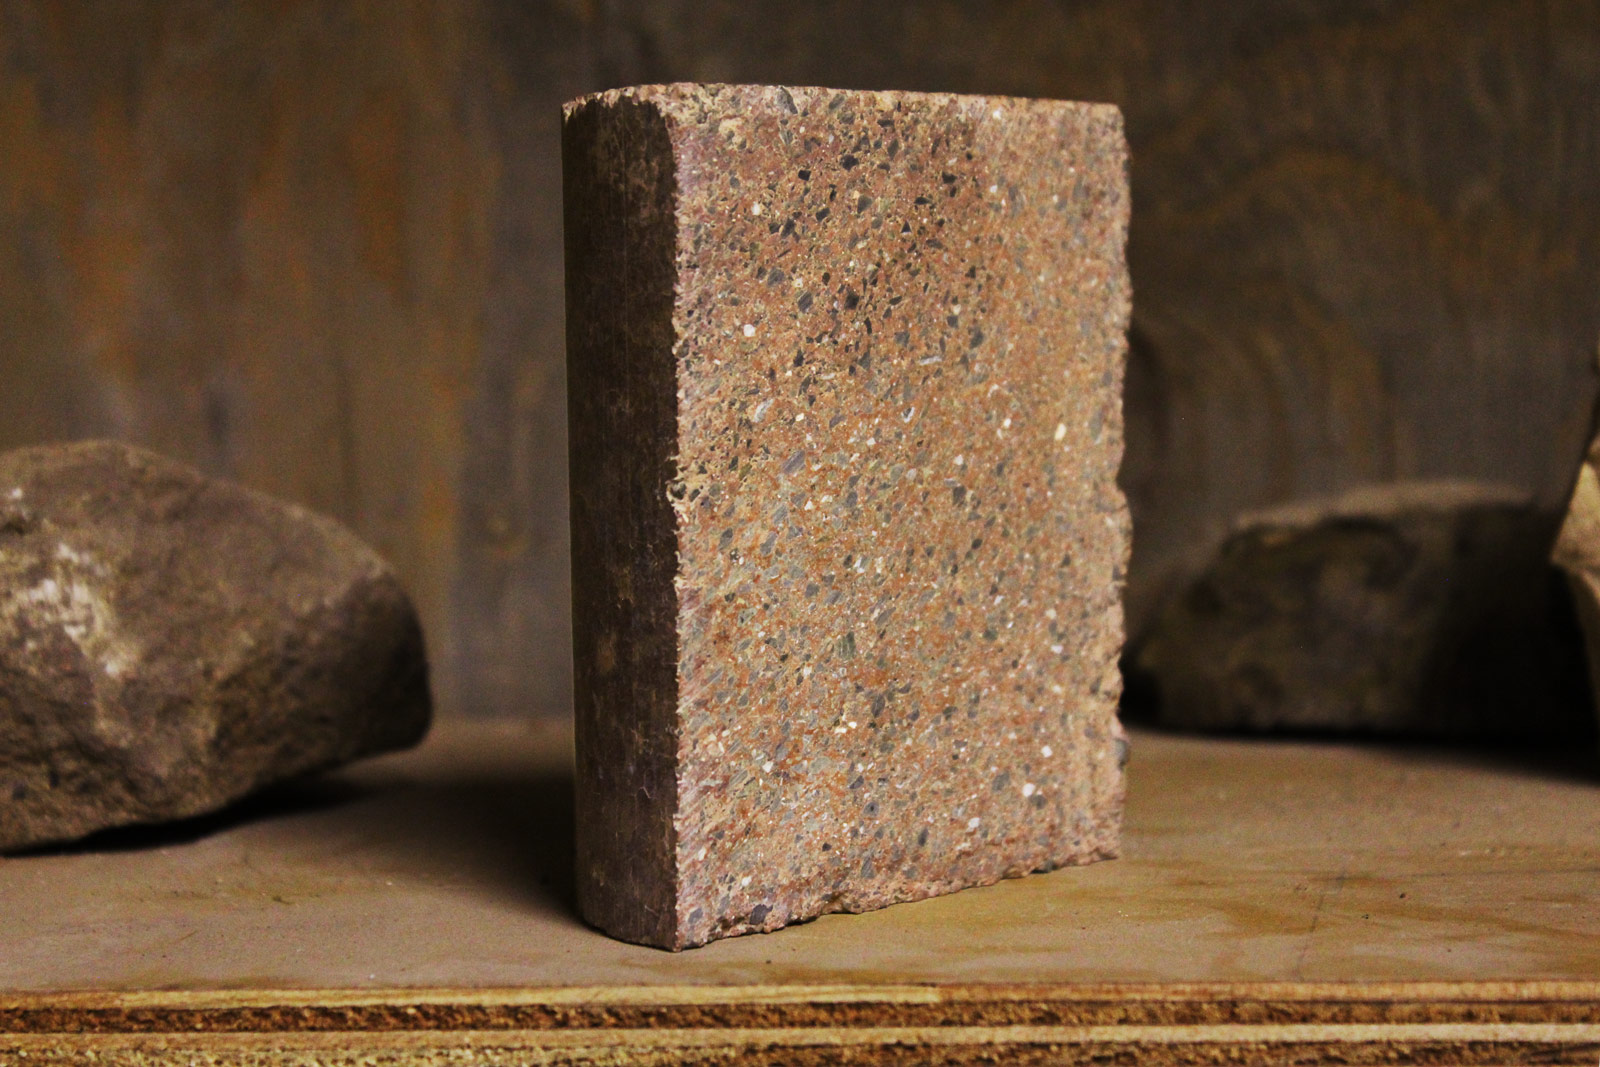 Cement Building Materials : Watershed materials develops geopolymer technology to turn